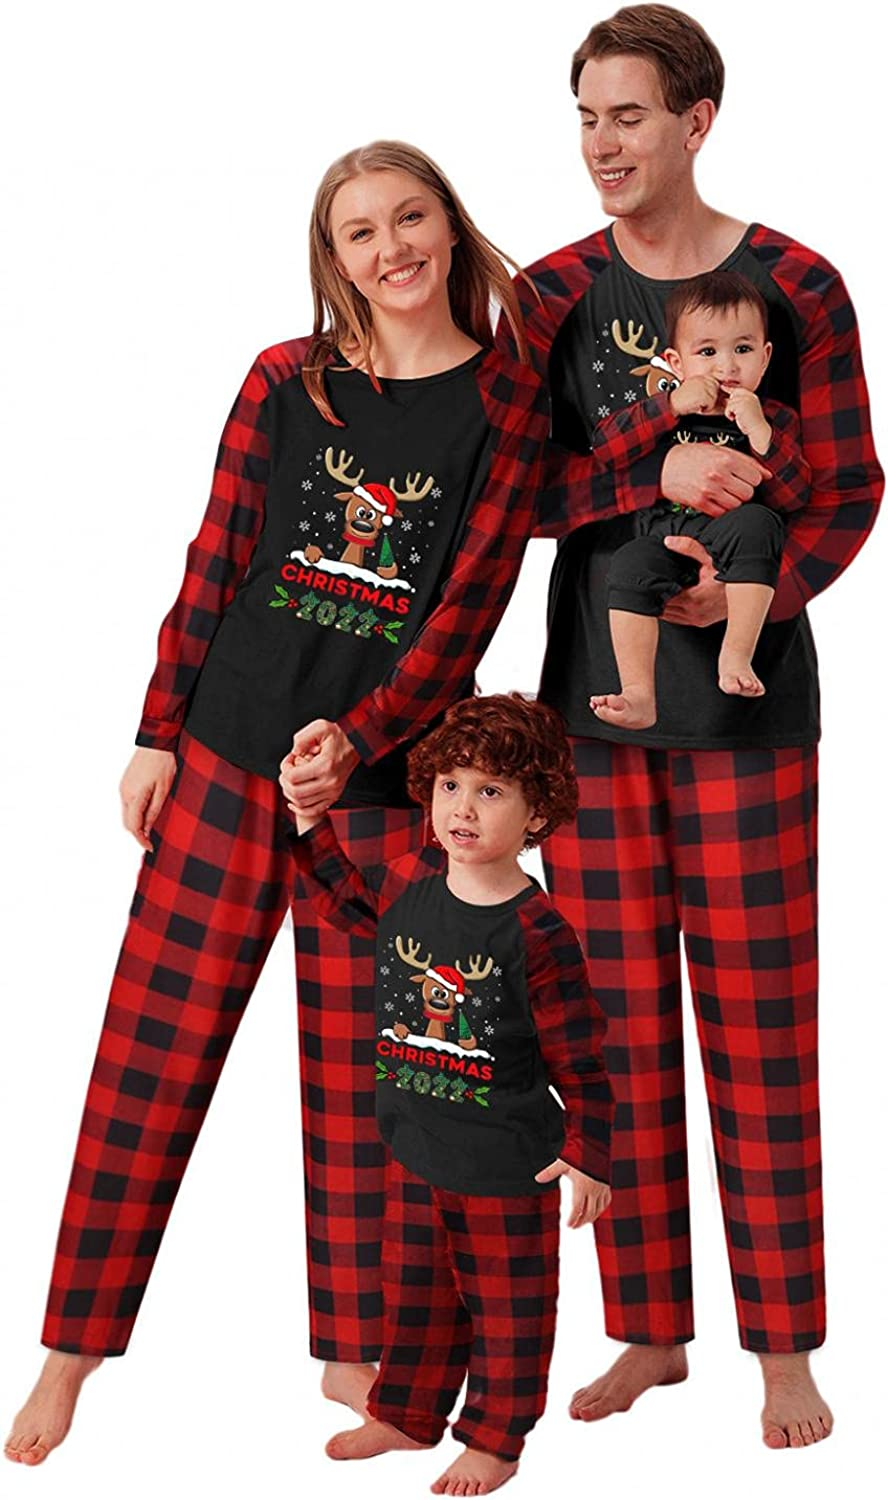 Max 66% OFF Christmas Matching Family Pajamas Set family S OFFicial store for Pjs